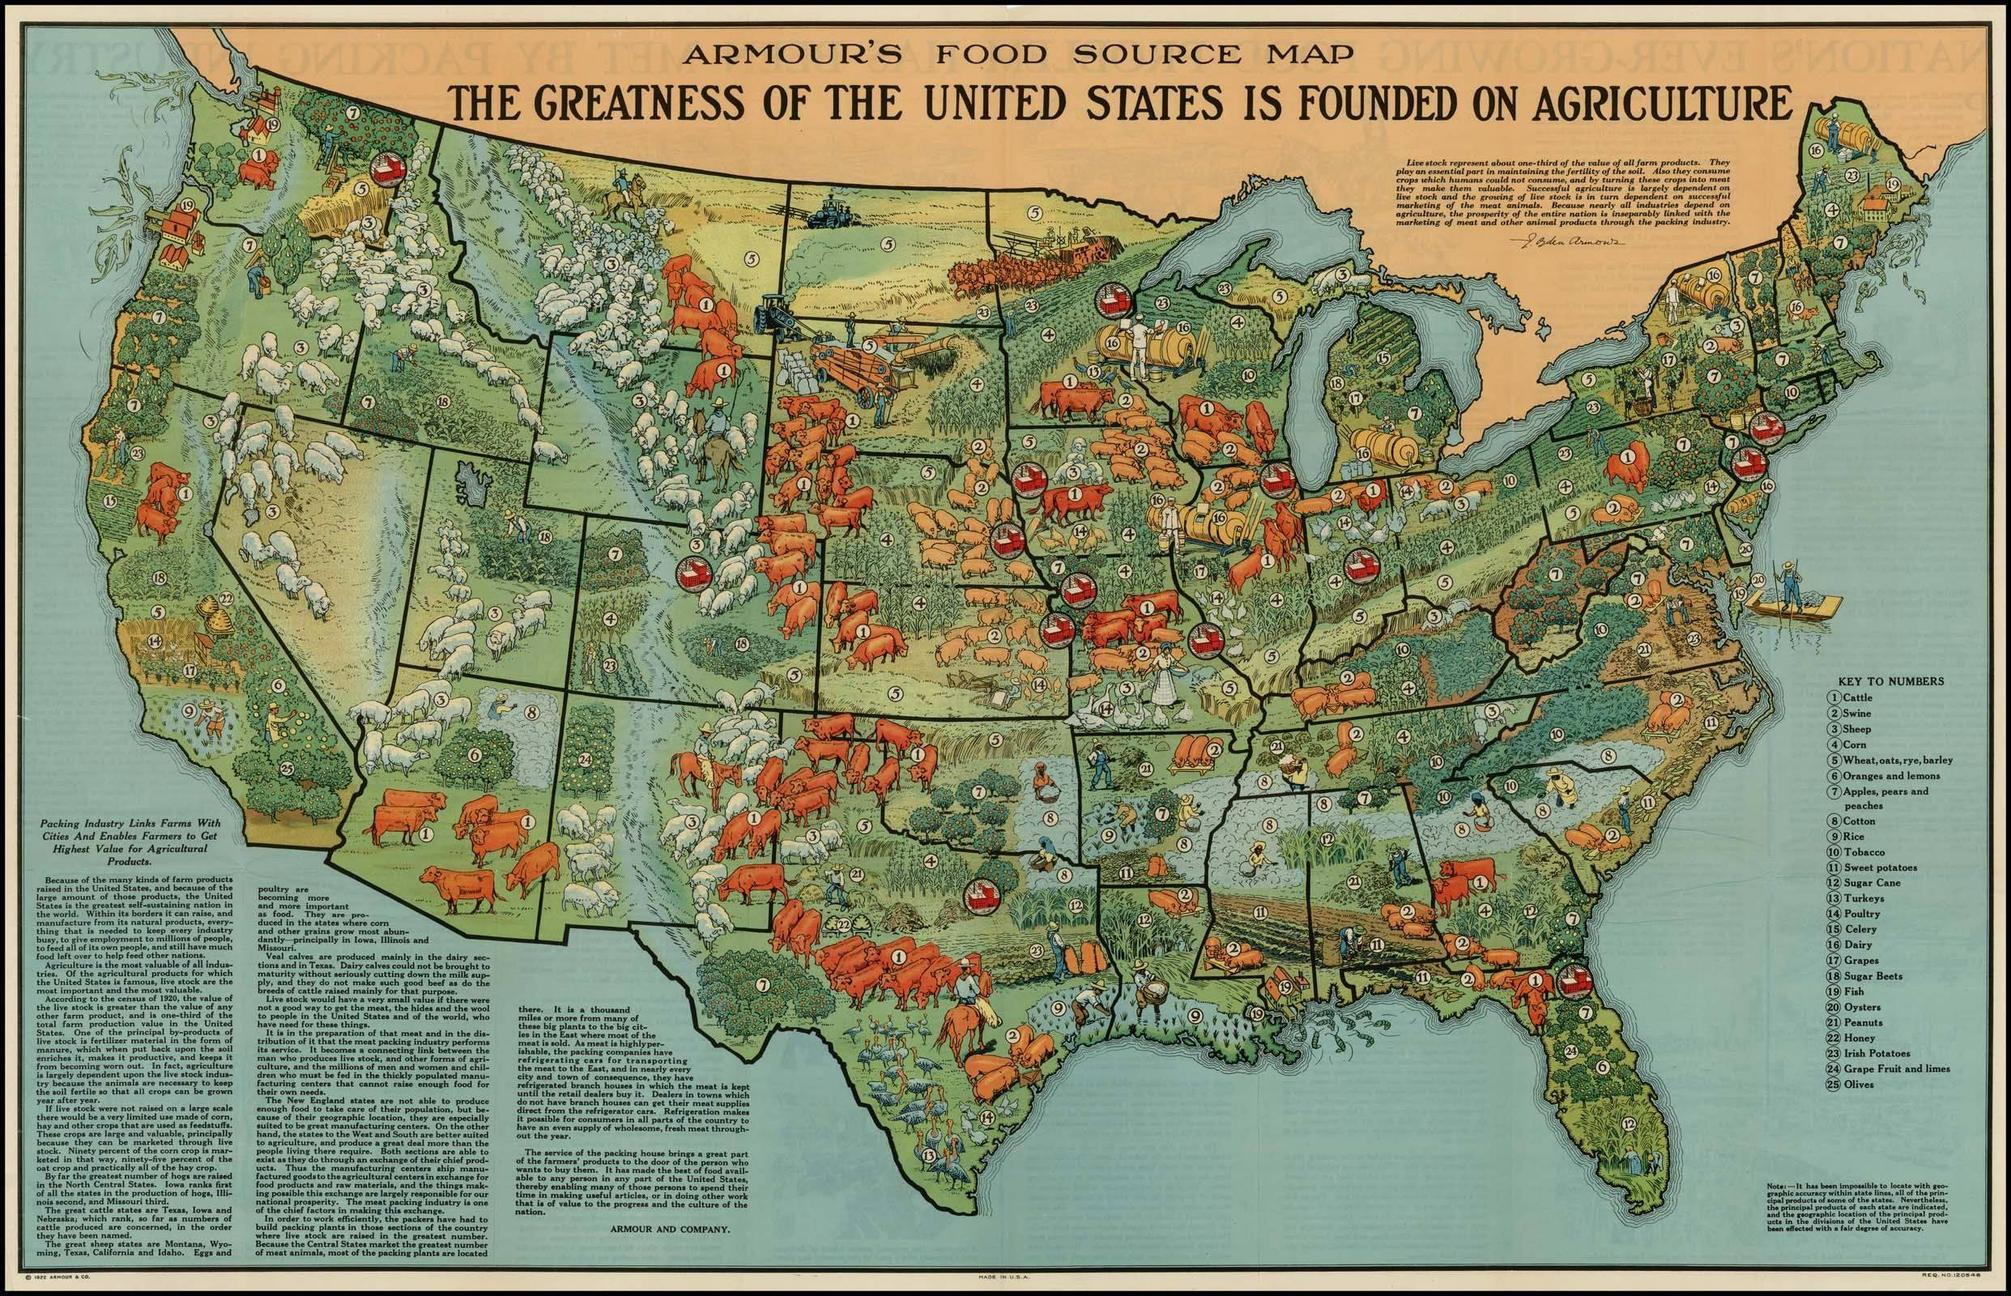 Of Map 1 American Agriculture In 1922 From 40 Maps That Explain Food In America Instruct Students To Compare The Agricultural Products Currently